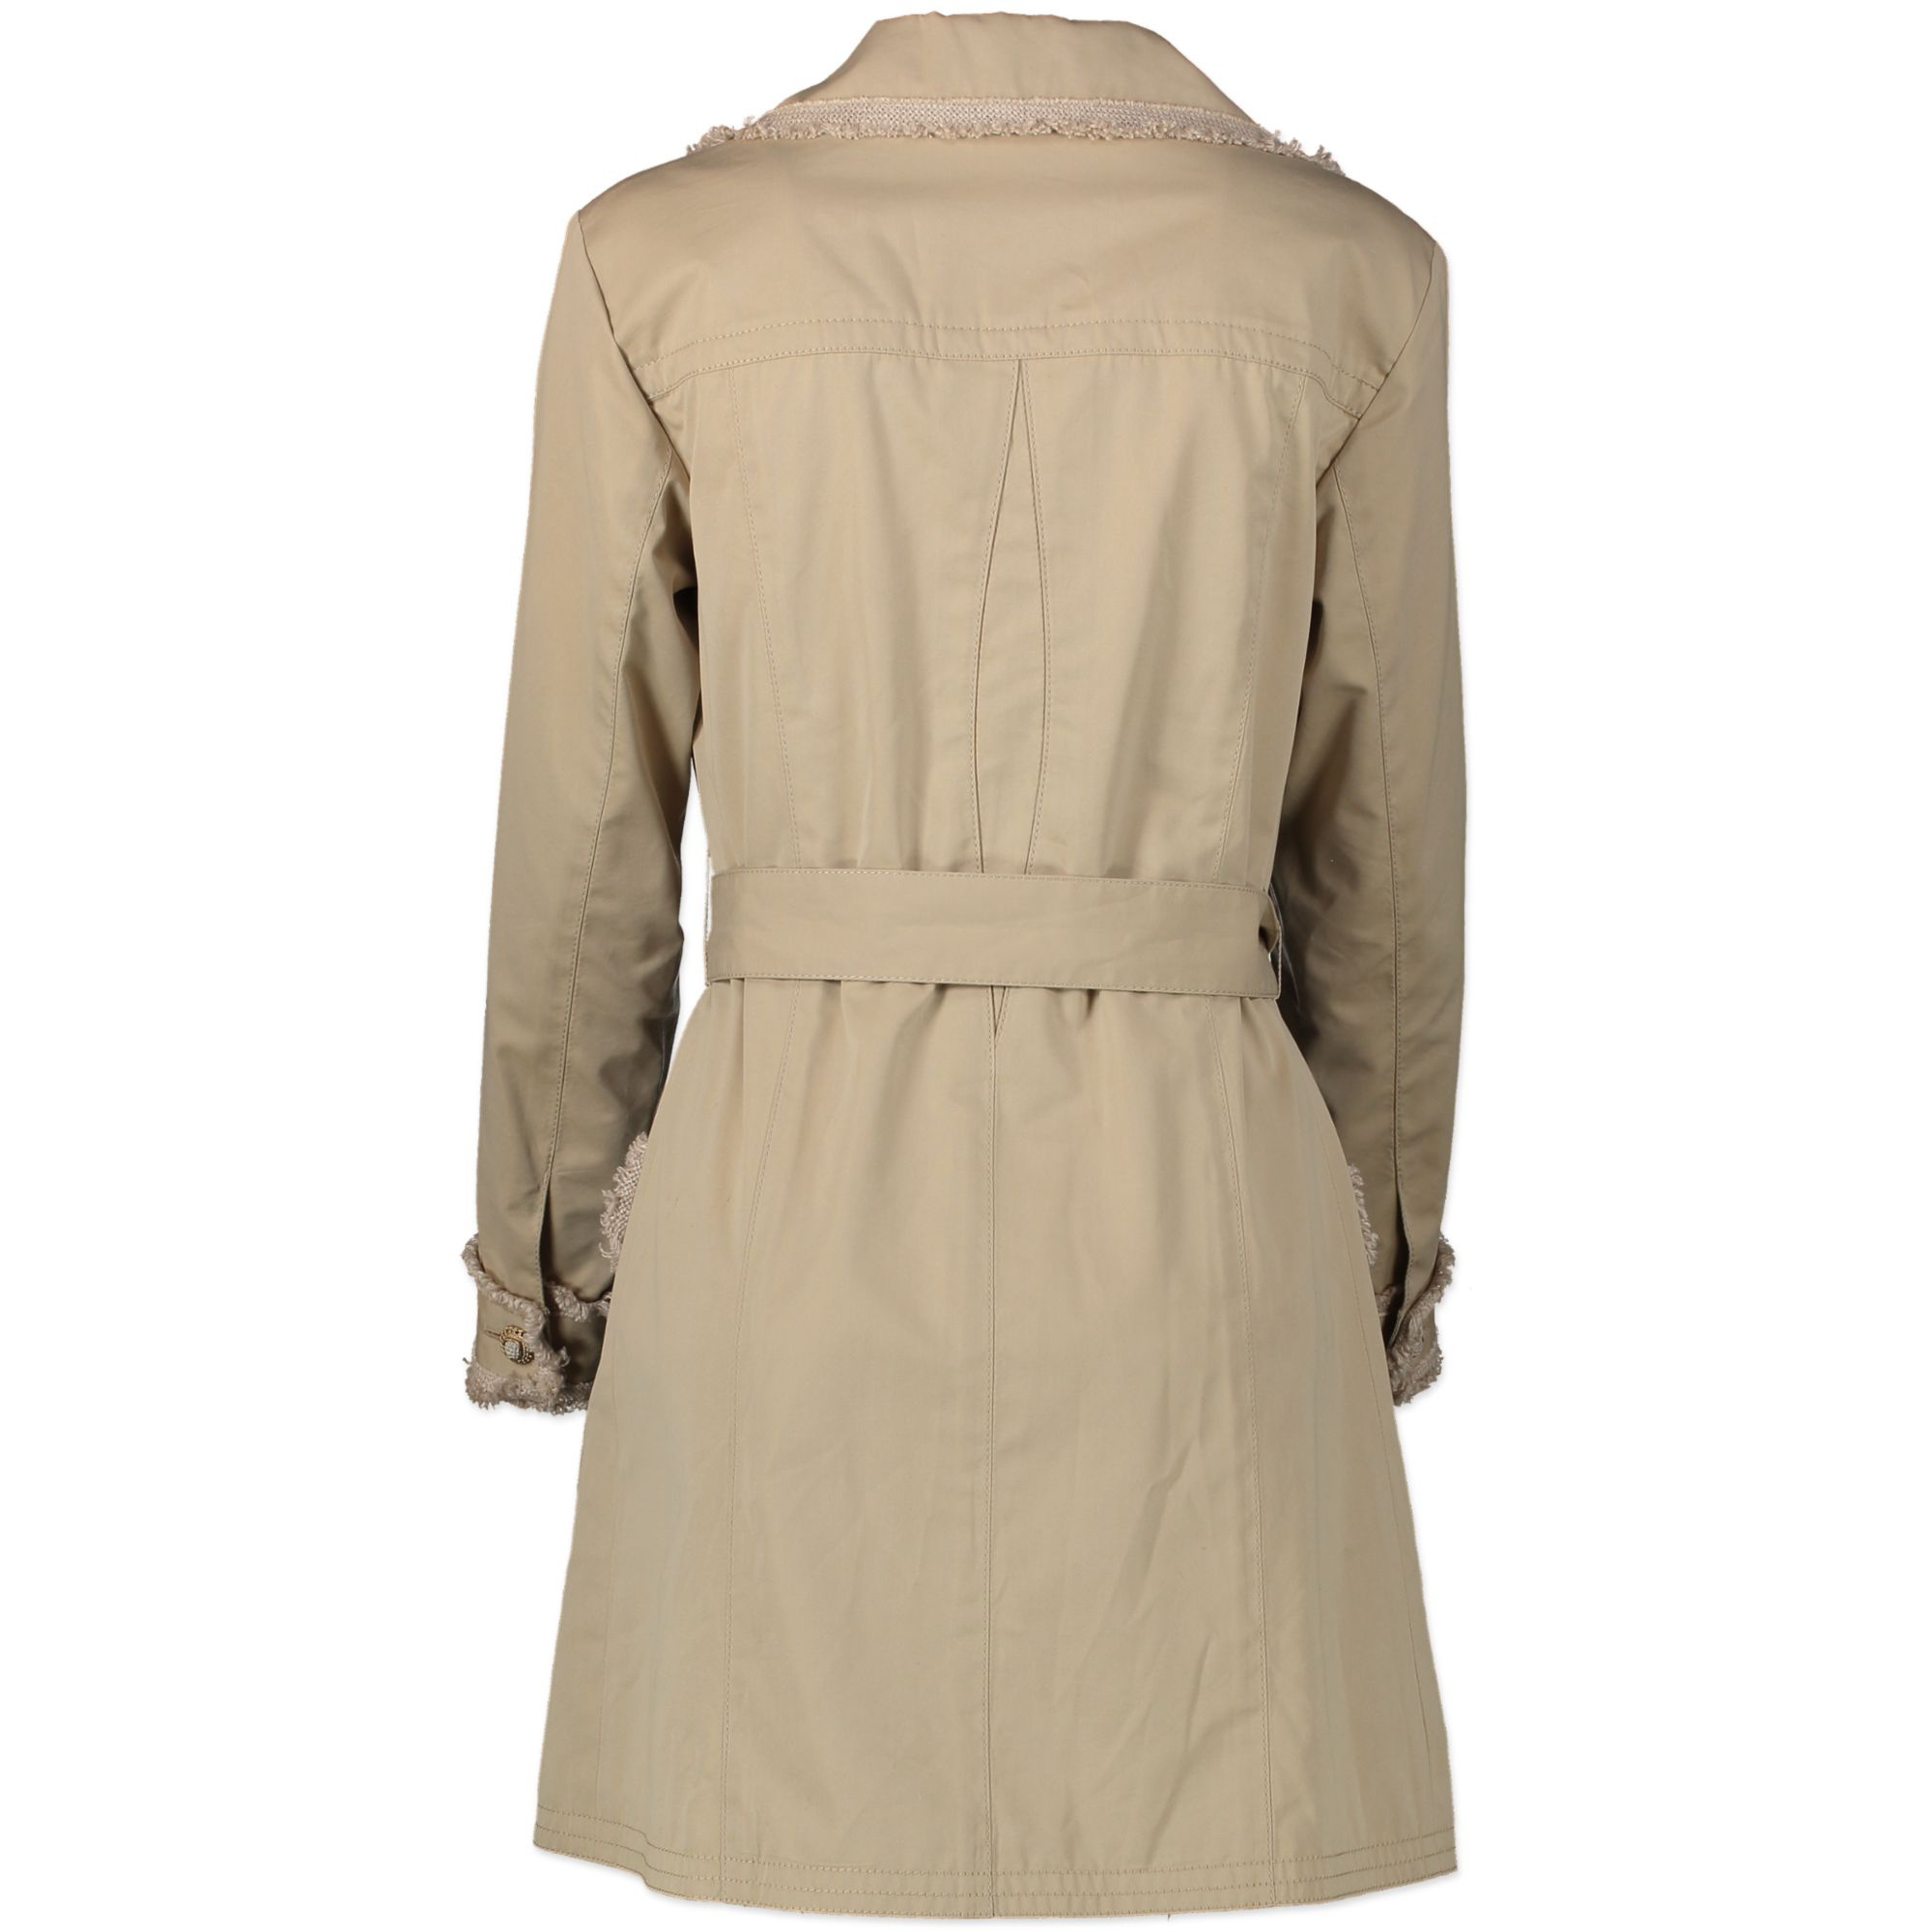 Chanel Beige Tweed Trimmed Trench Coat for sale online